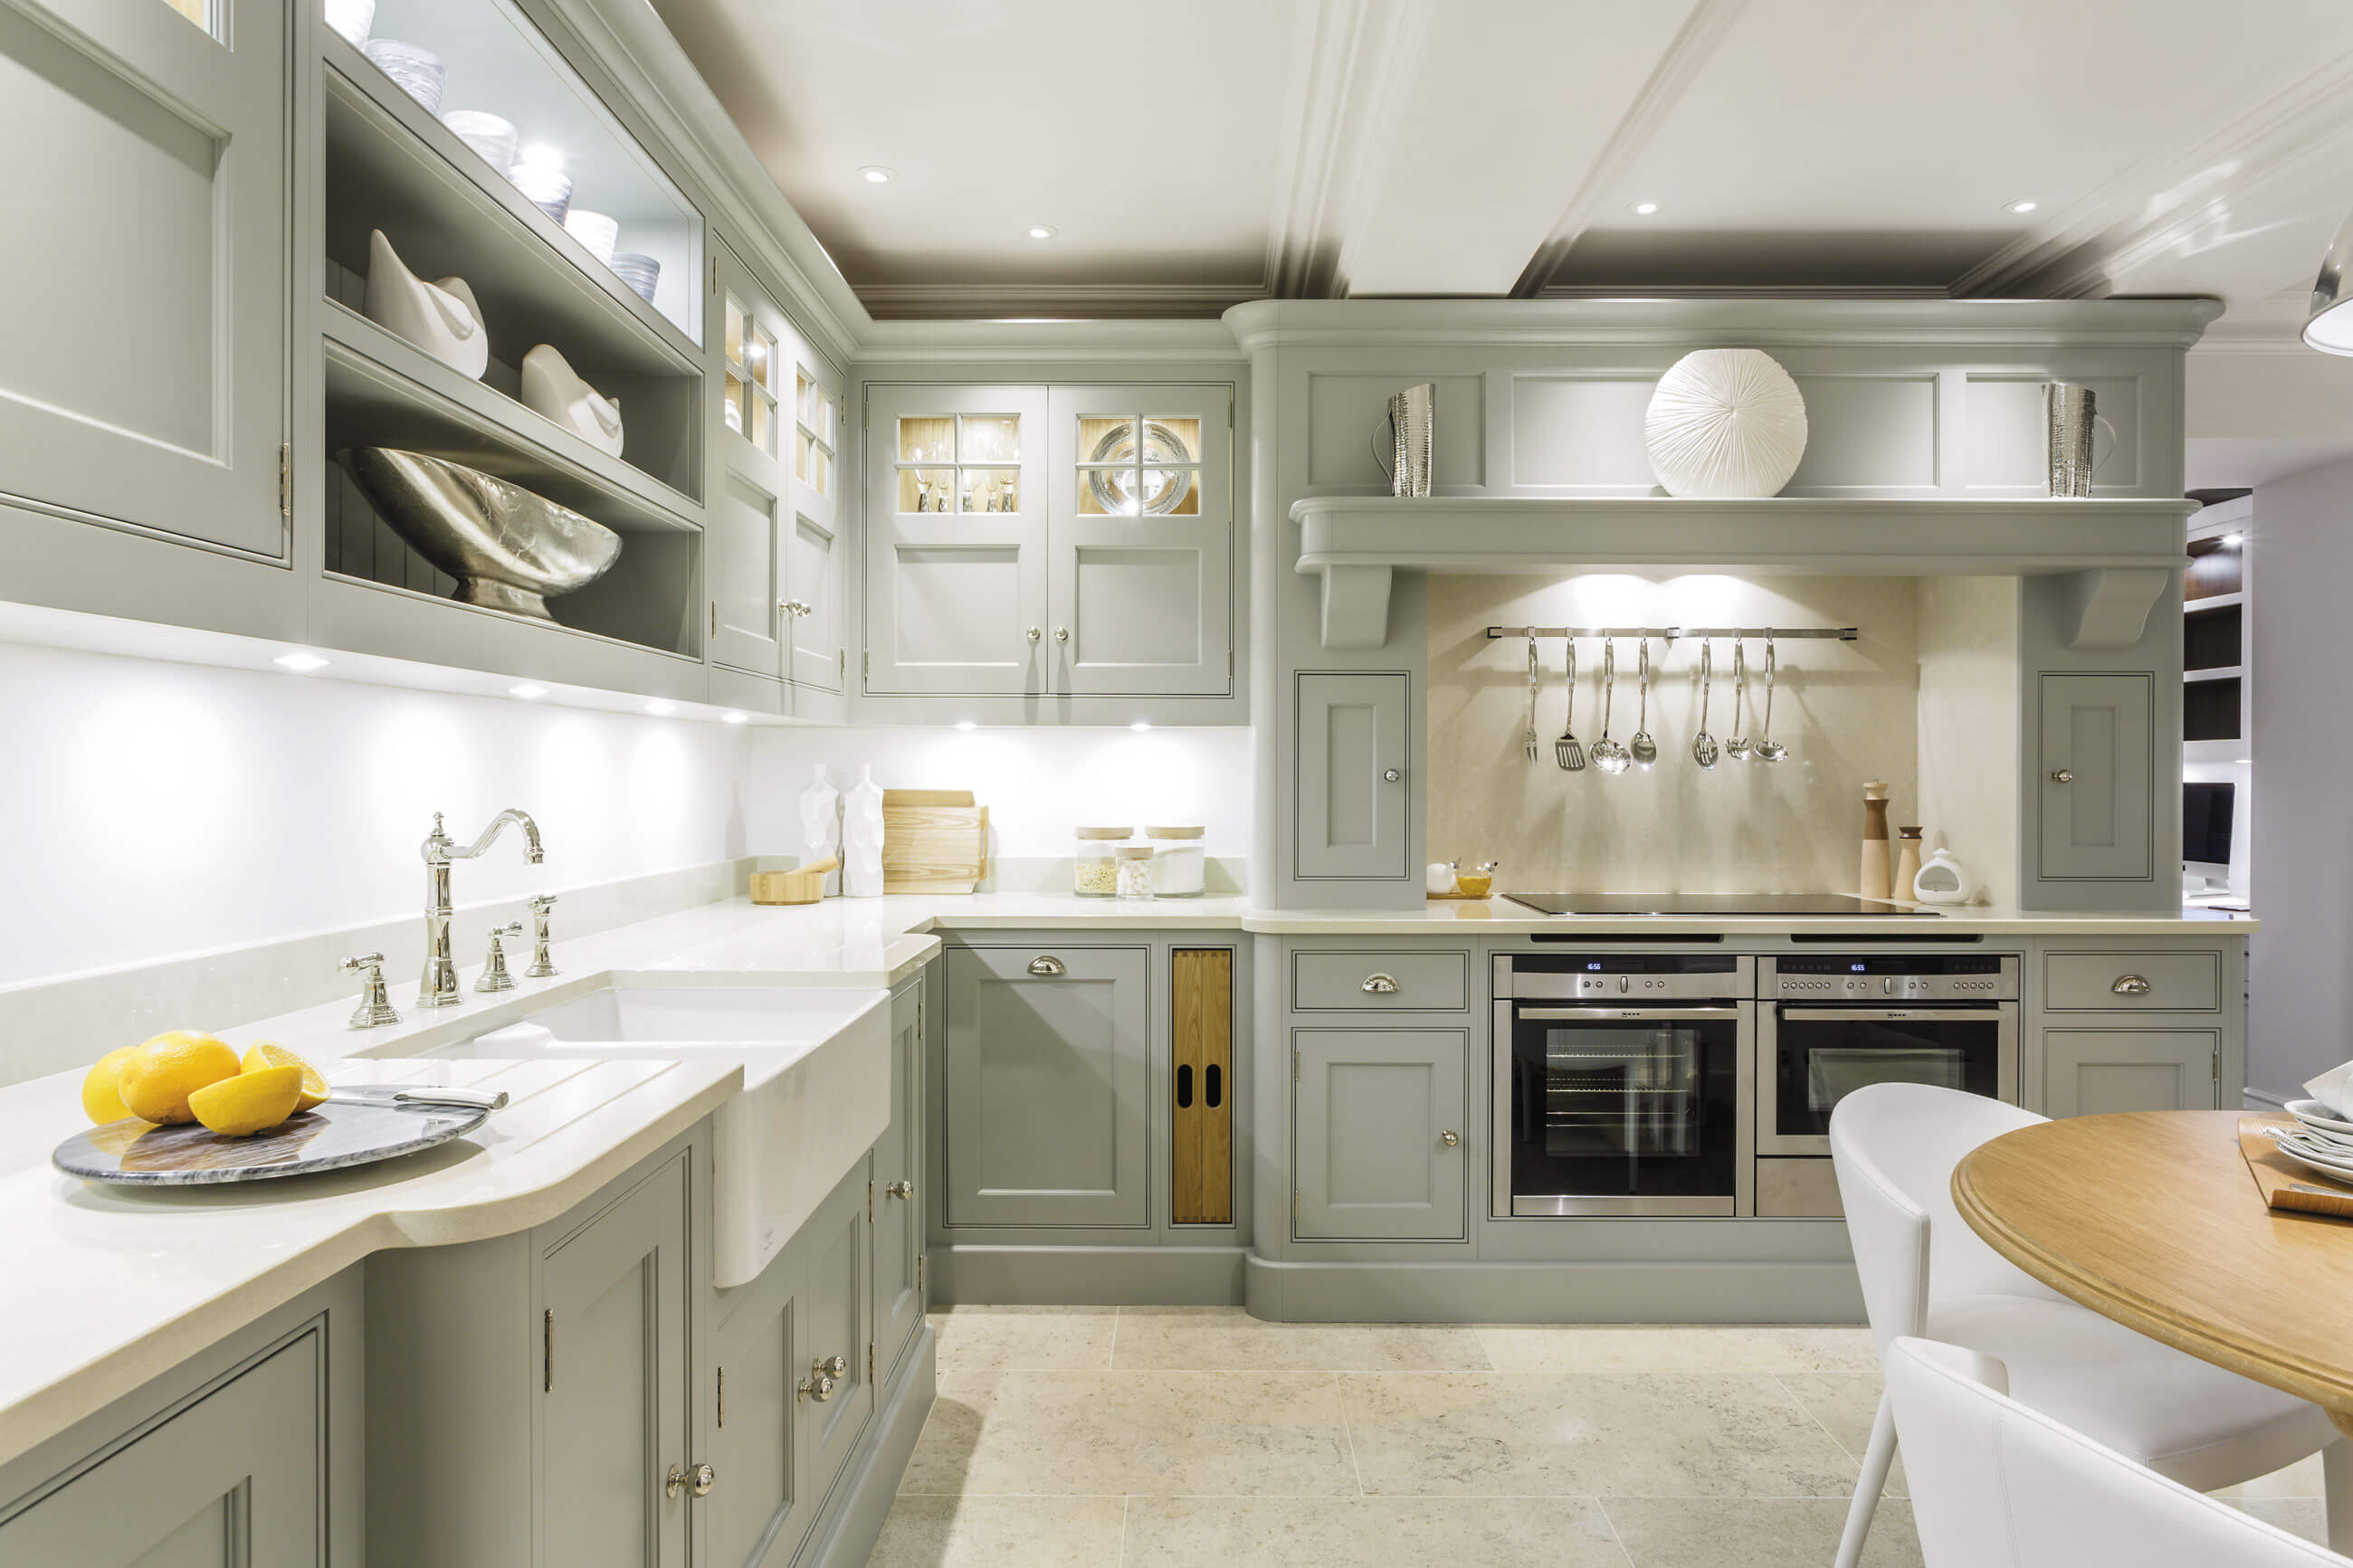 Exquisite Chicory Painted Kitchen | Tom Howley